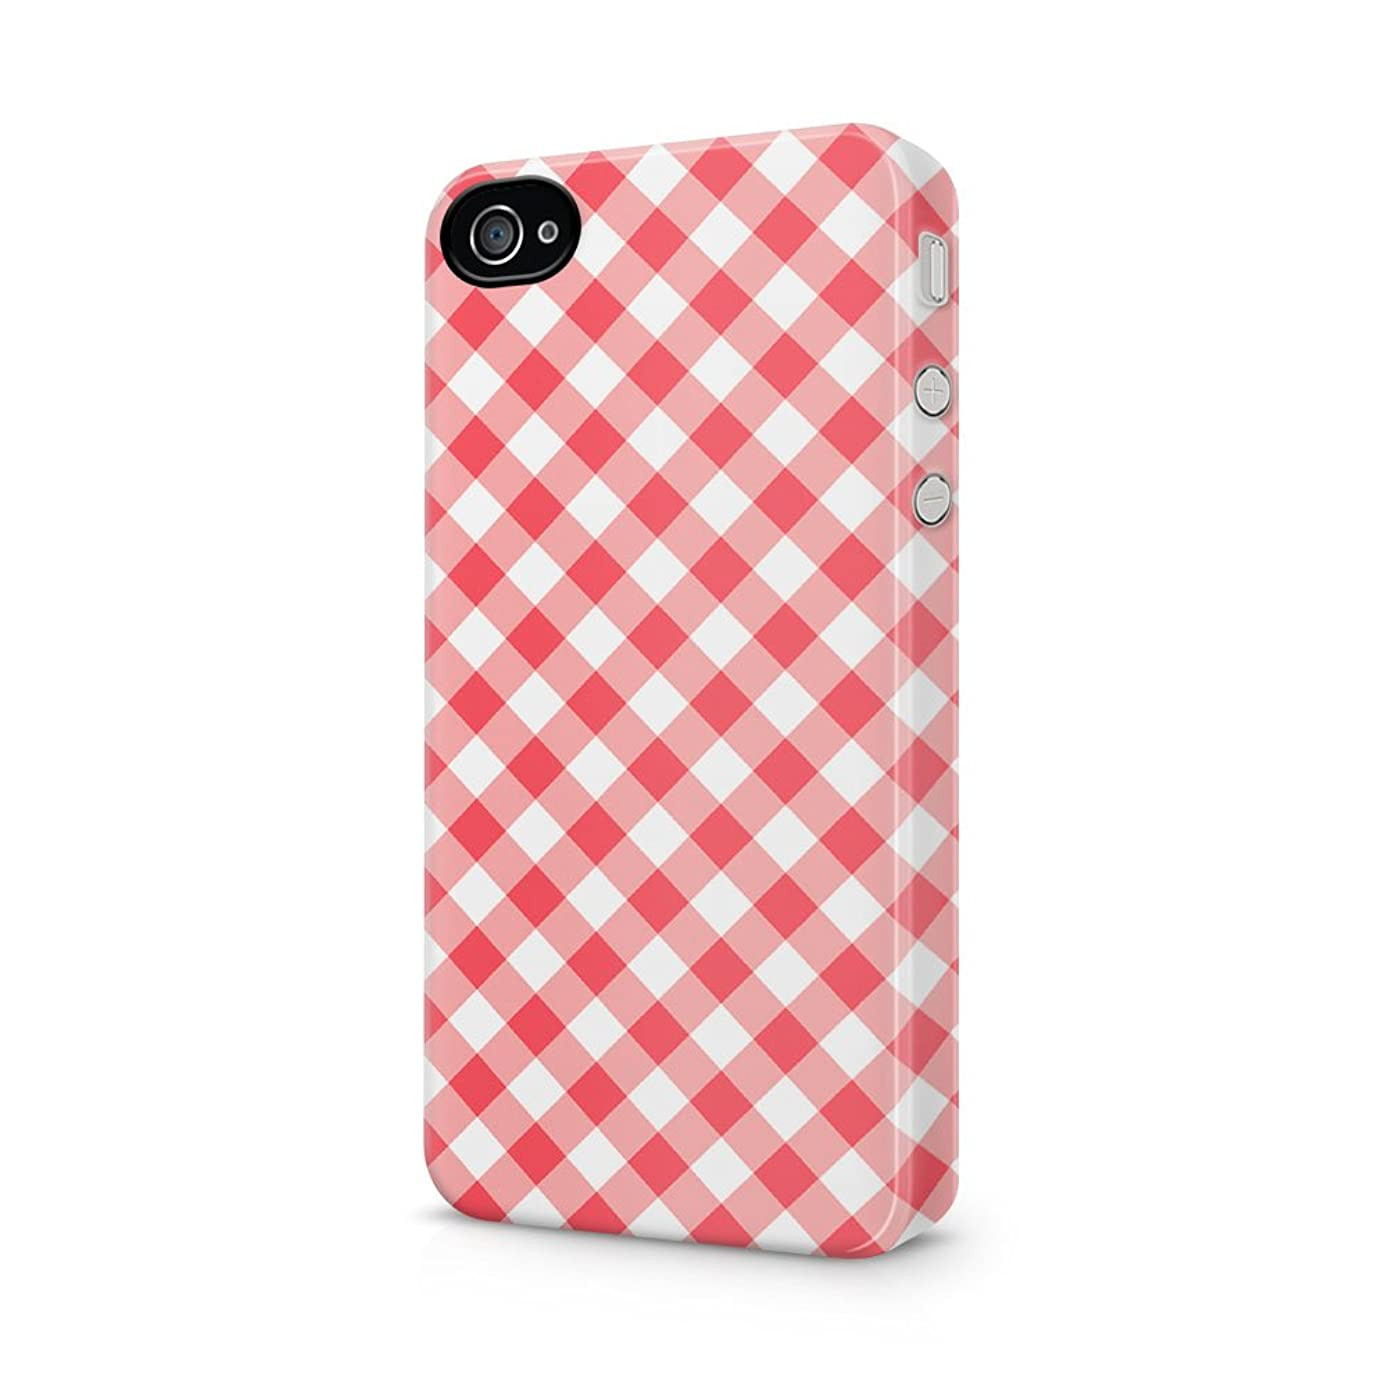 Red Vintage Checkered Tablecloth Pattern Apple iPhone 4, iPhone 4s Plastic Phone Protective Case Cover